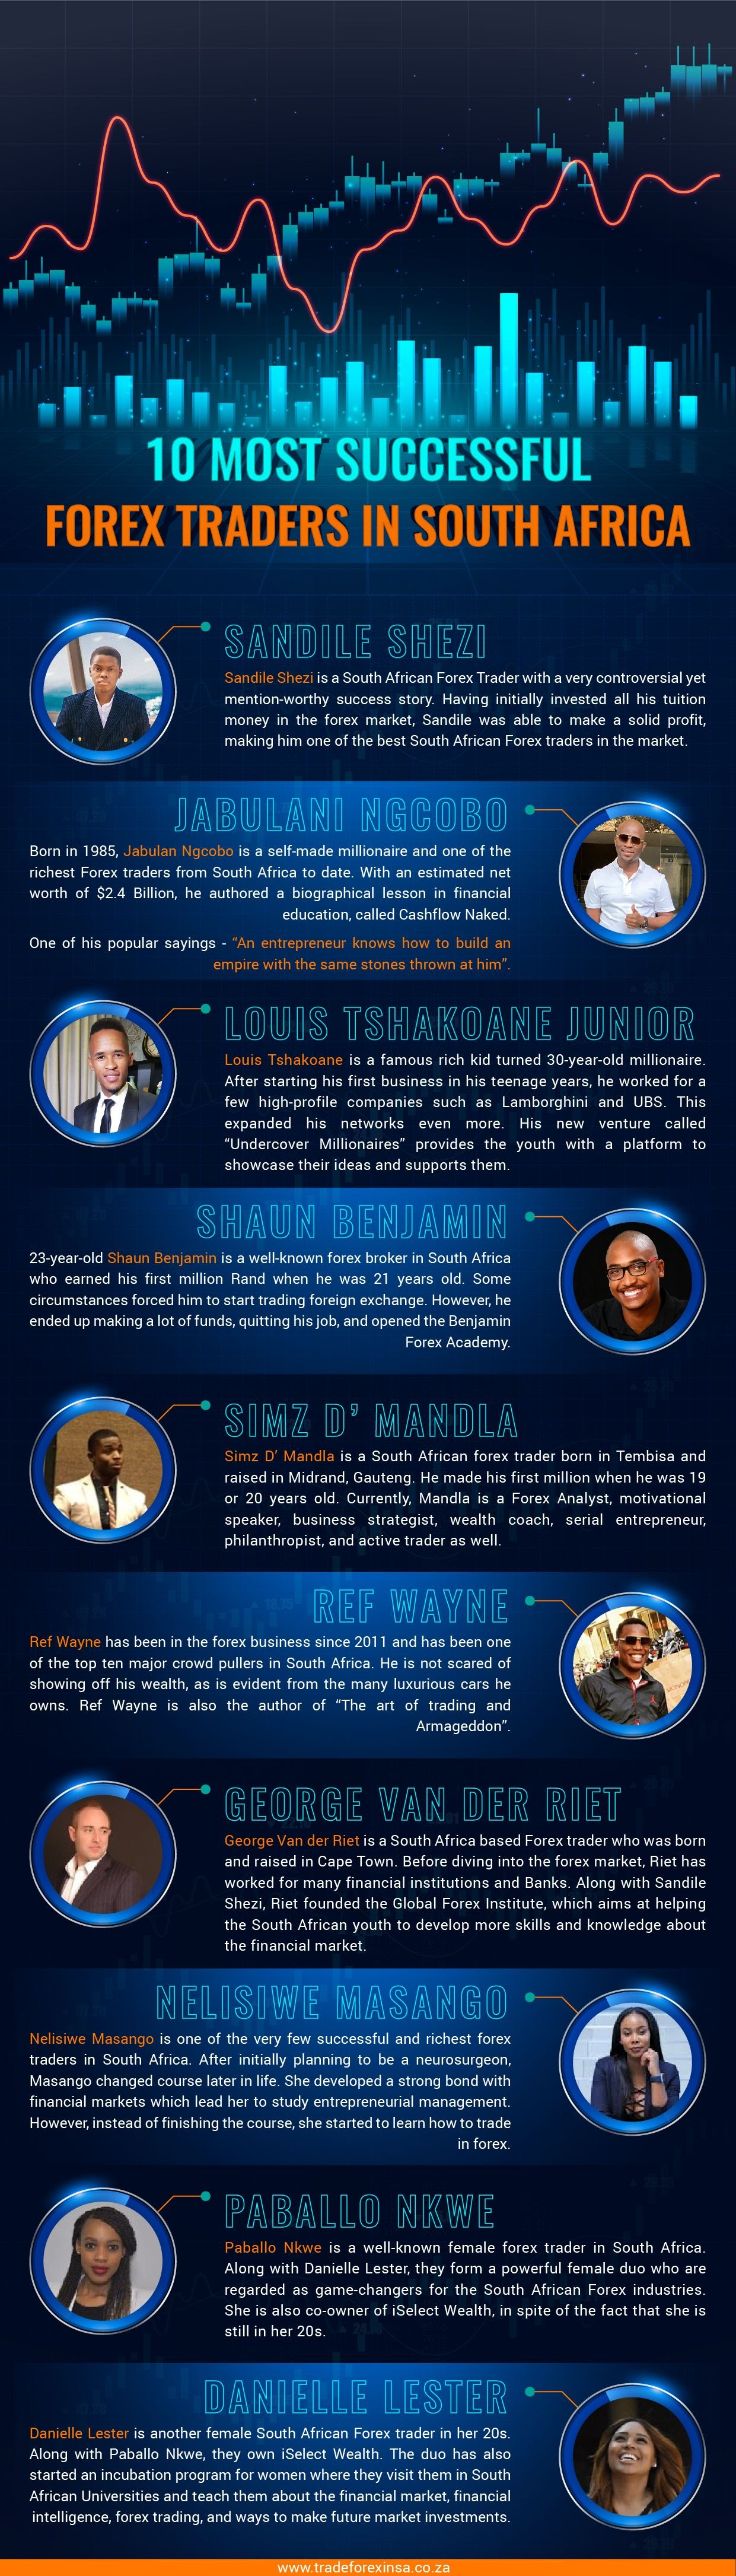 10 Most Successful Forex Traders in South Africa #infographic